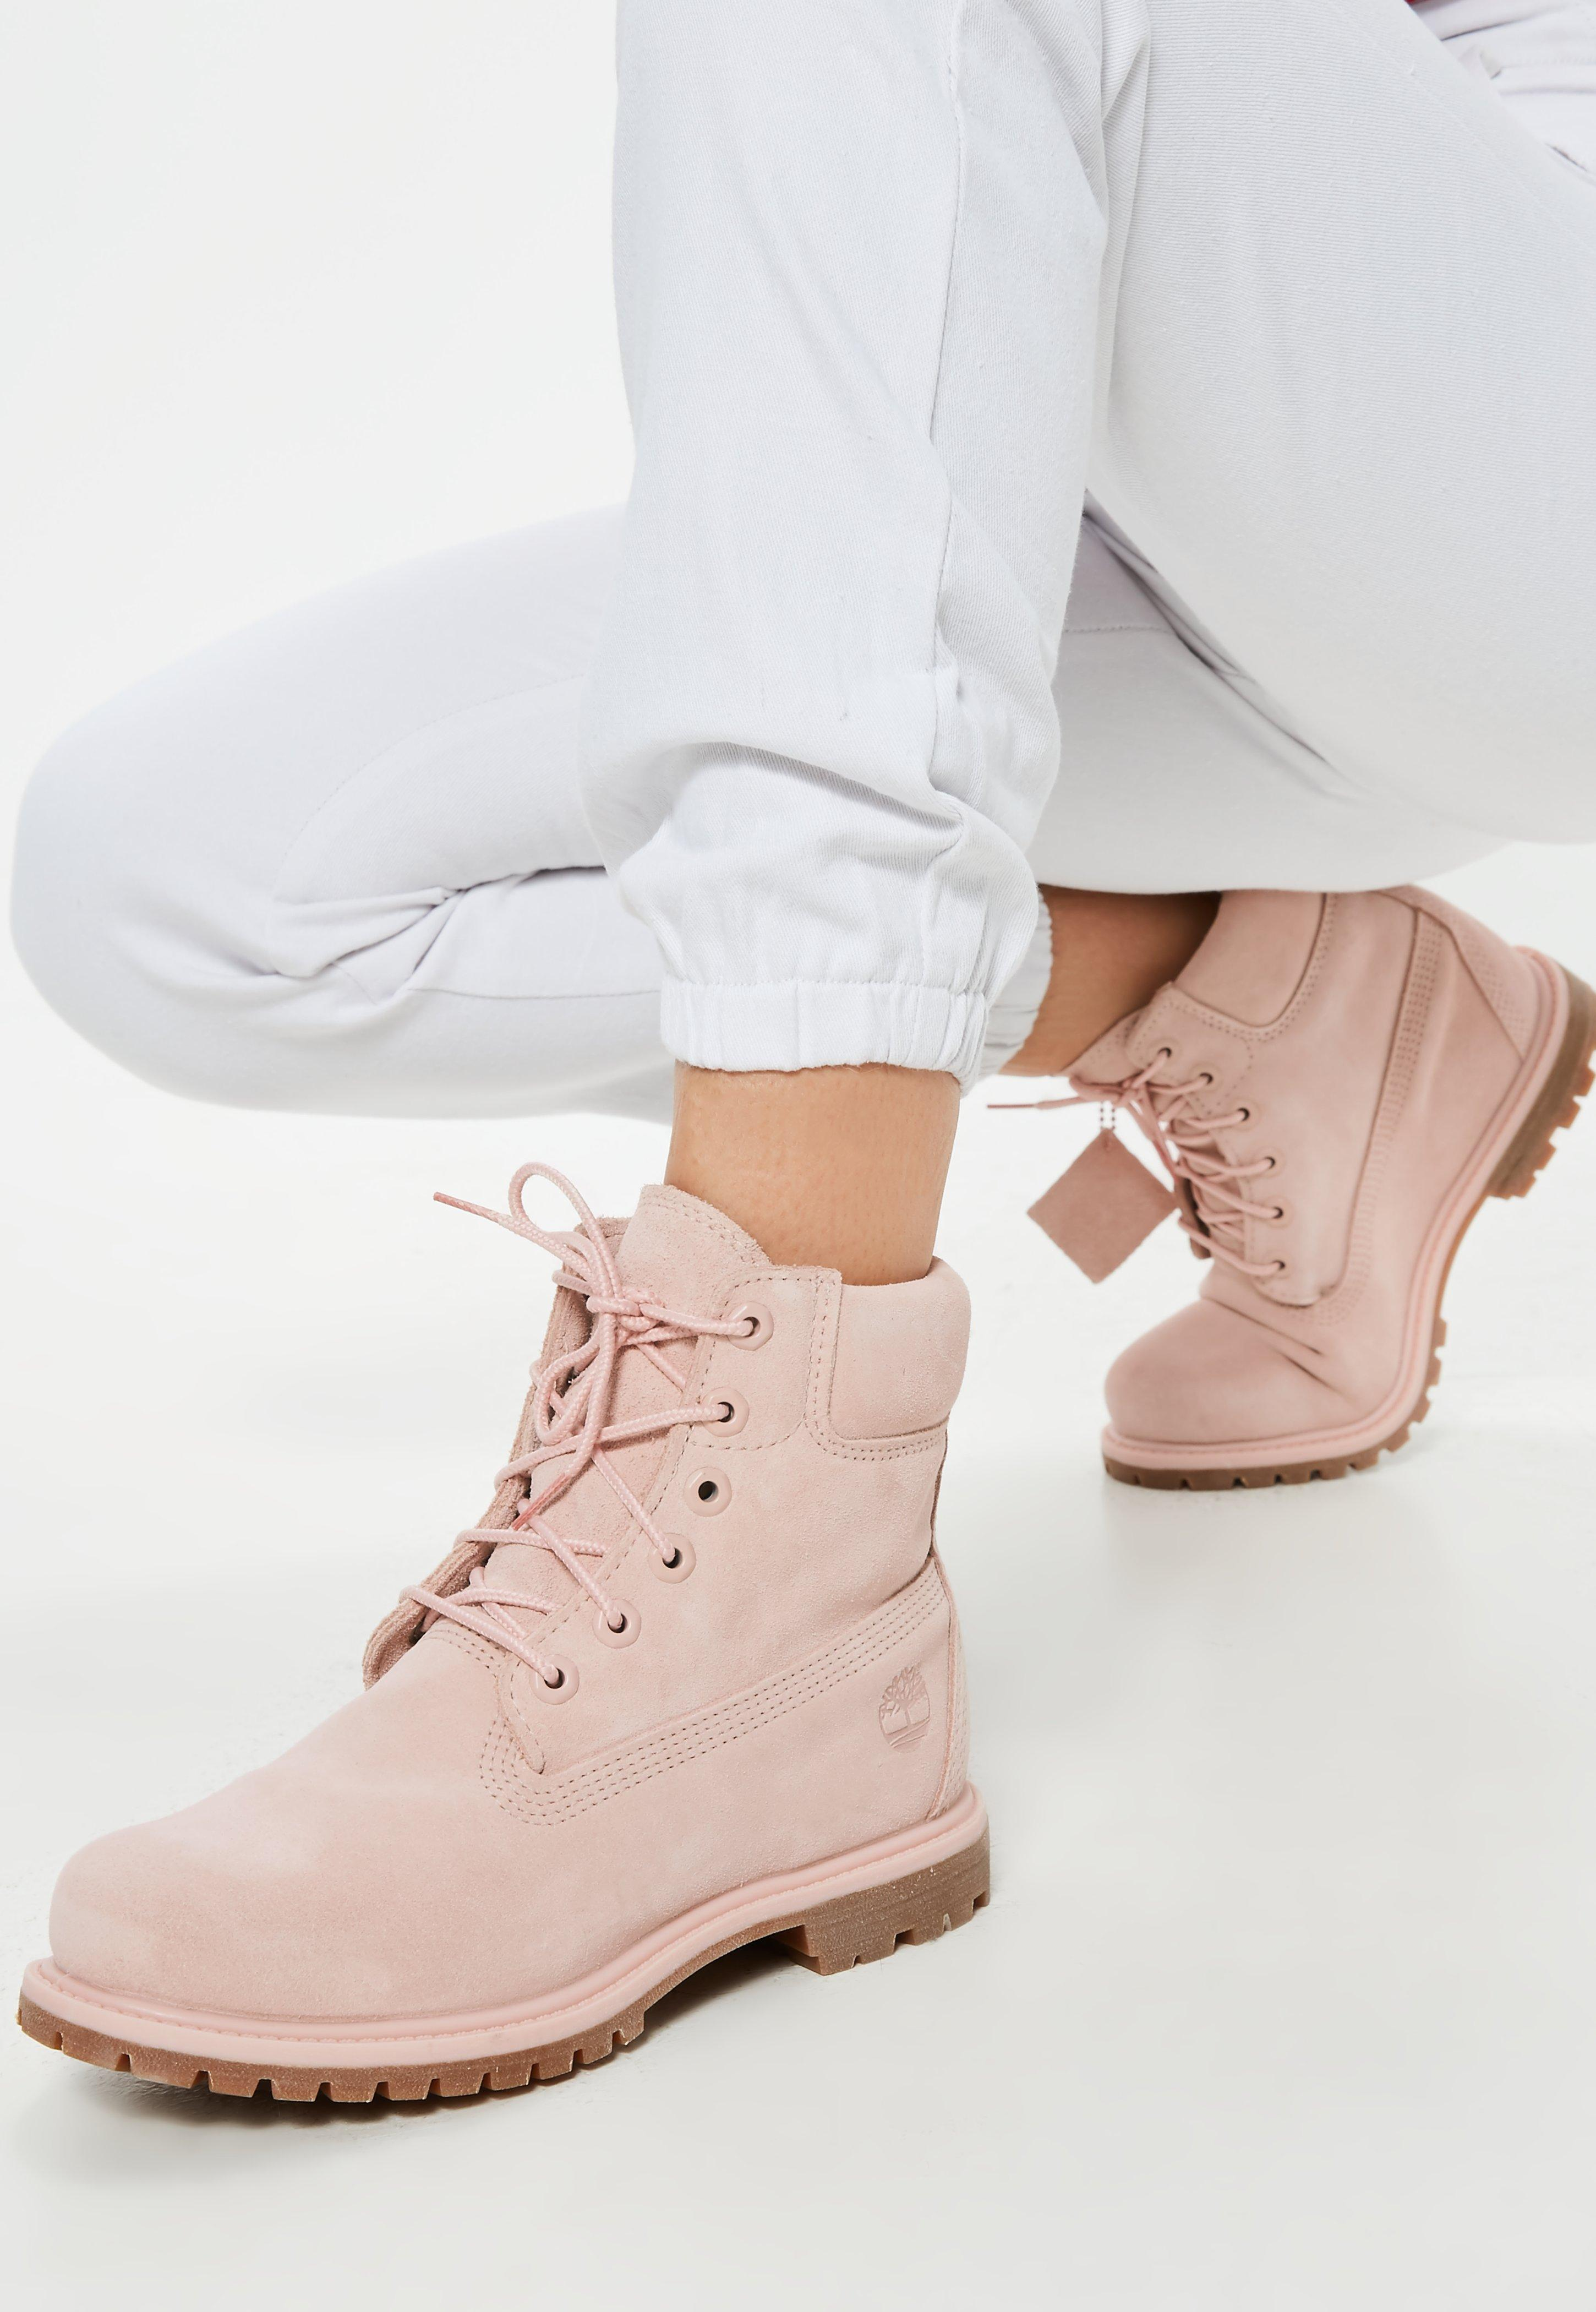 new arrivals b3229 eb987 Timberland Rosa Icon 6-Inch Waterbuck Premium Boots